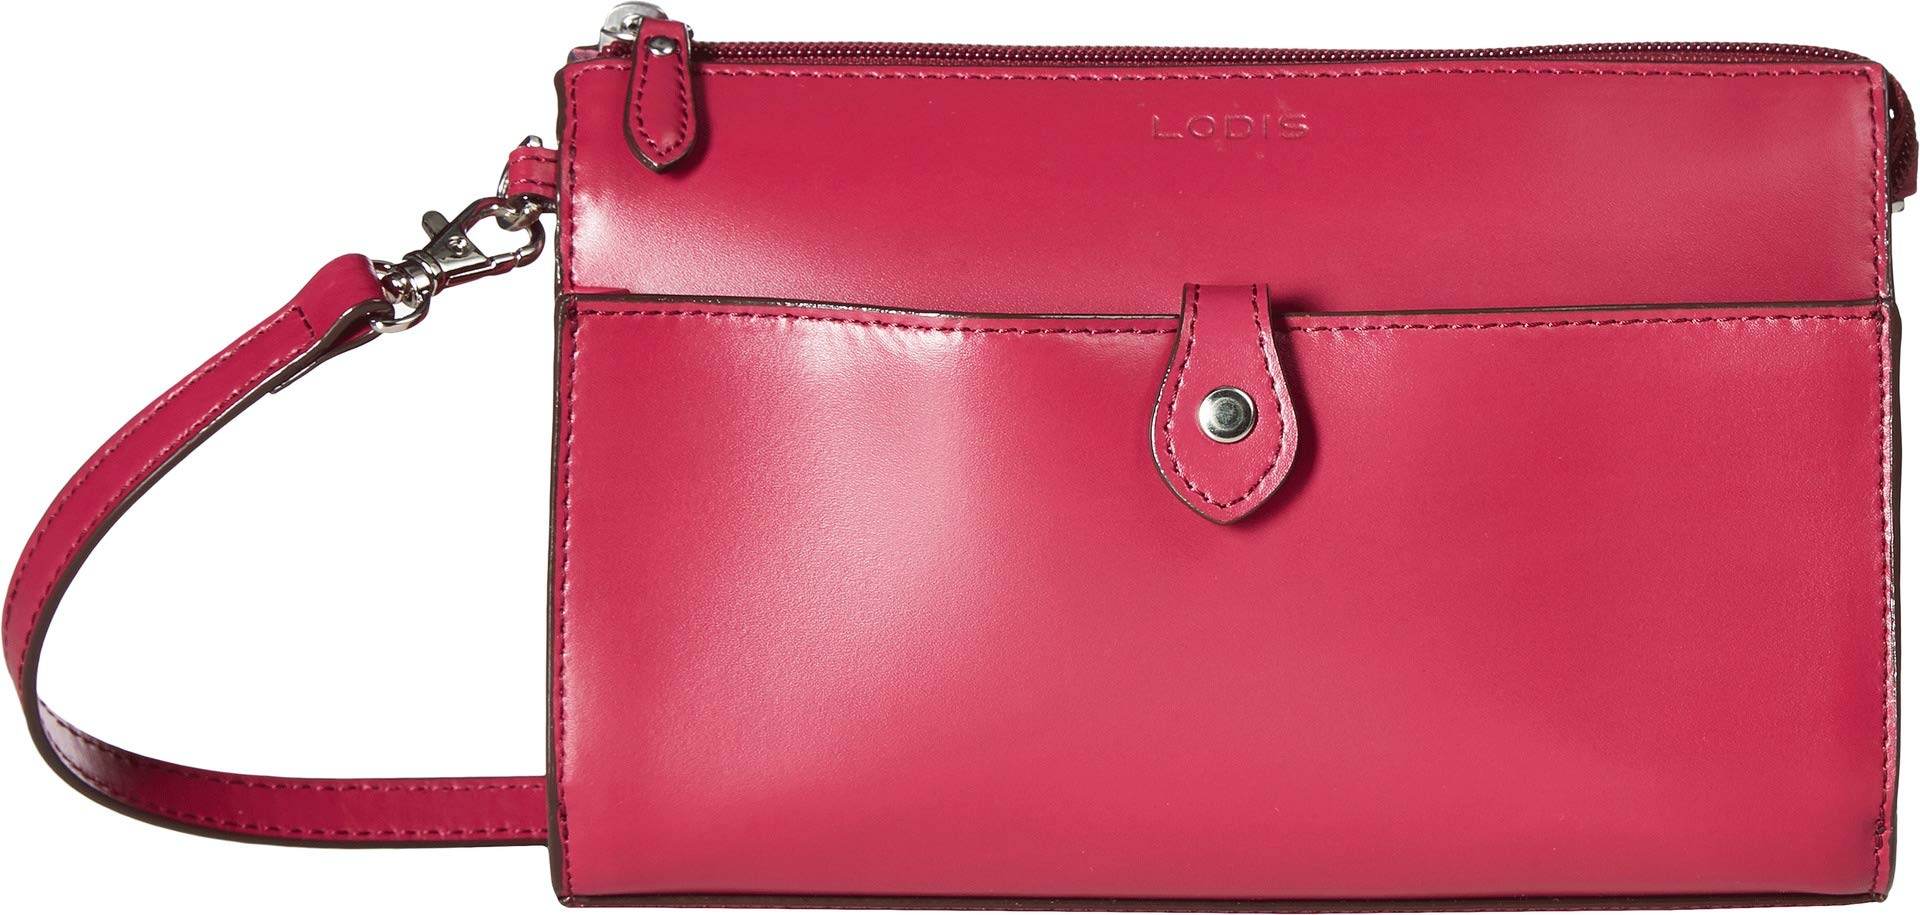 Lodis Accessories Women's Audrey RFID Vicky Convertible Crossbody Clutch Berry/Avocado One Size